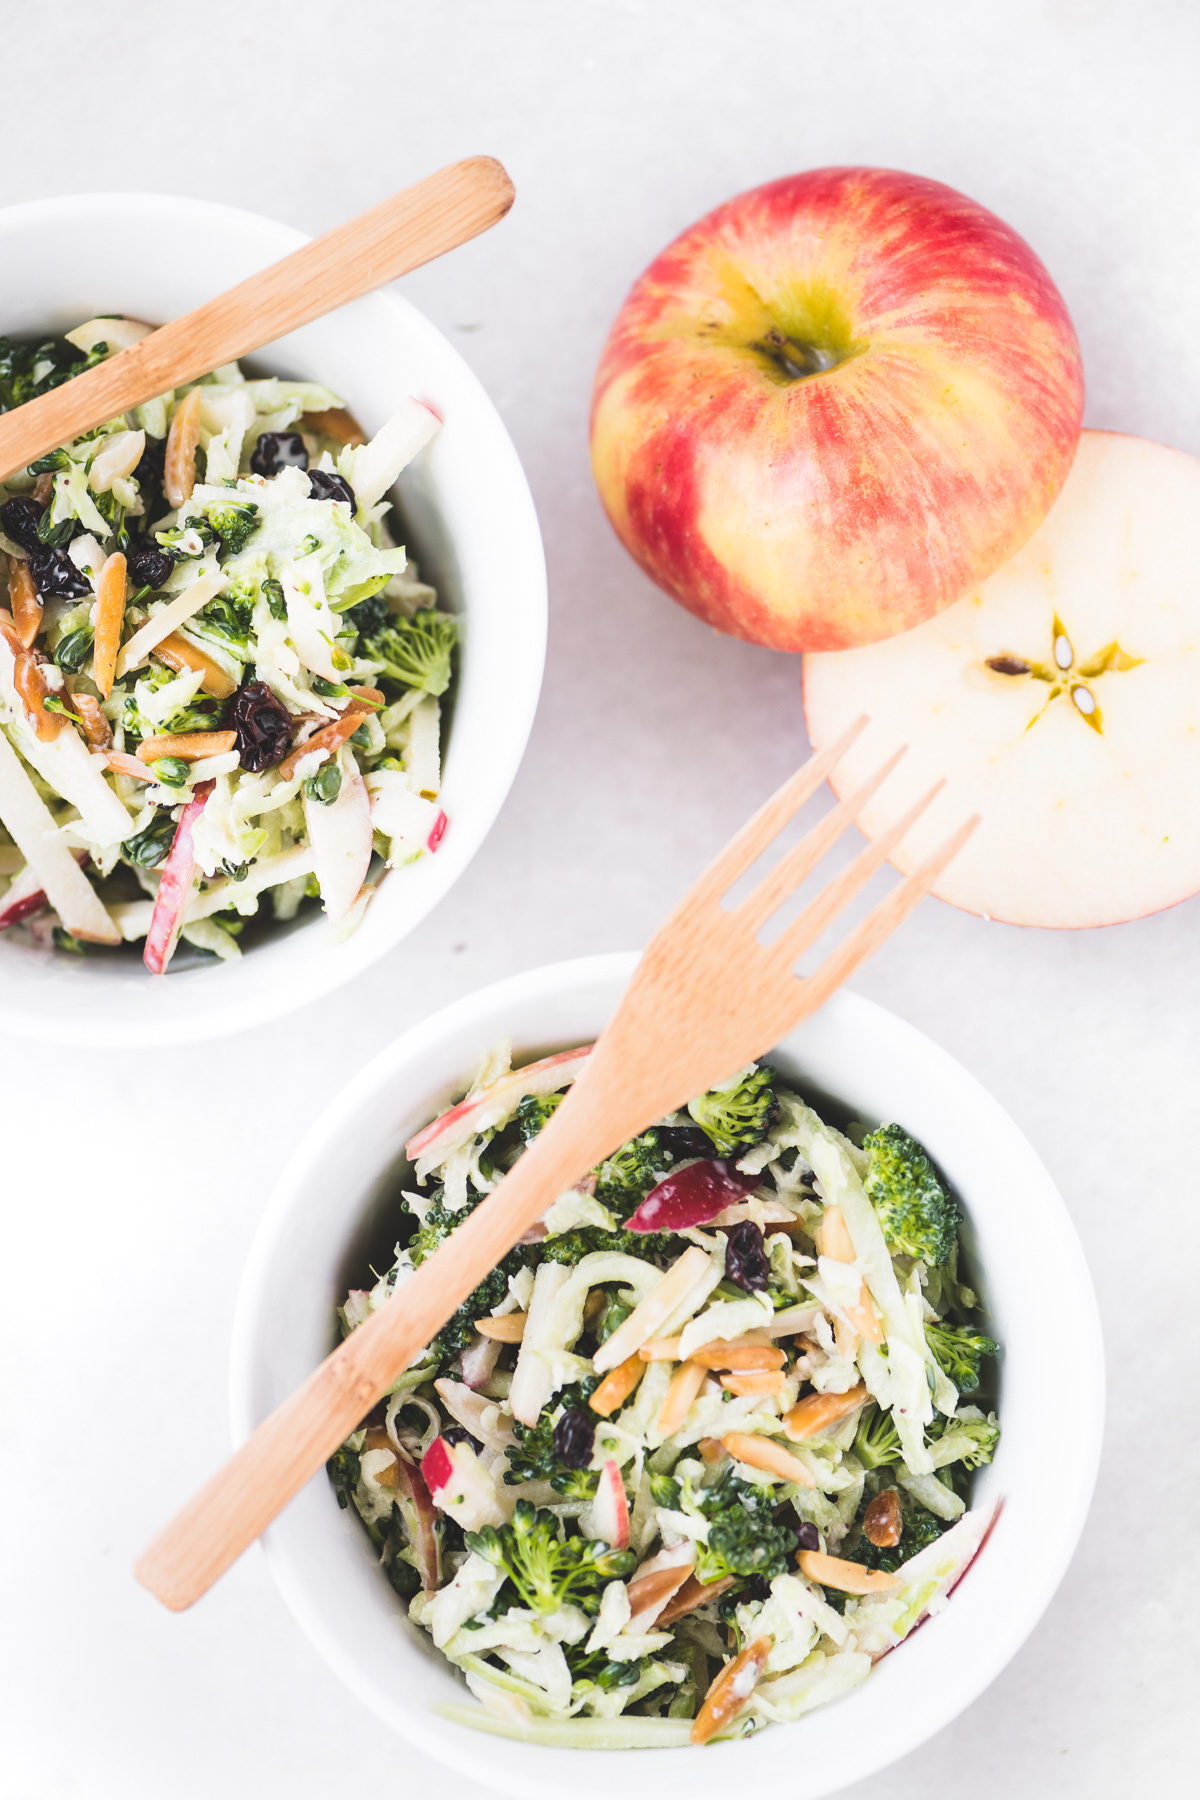 Broccoli Honeycrisp Slaw with a Honeycrisp apple